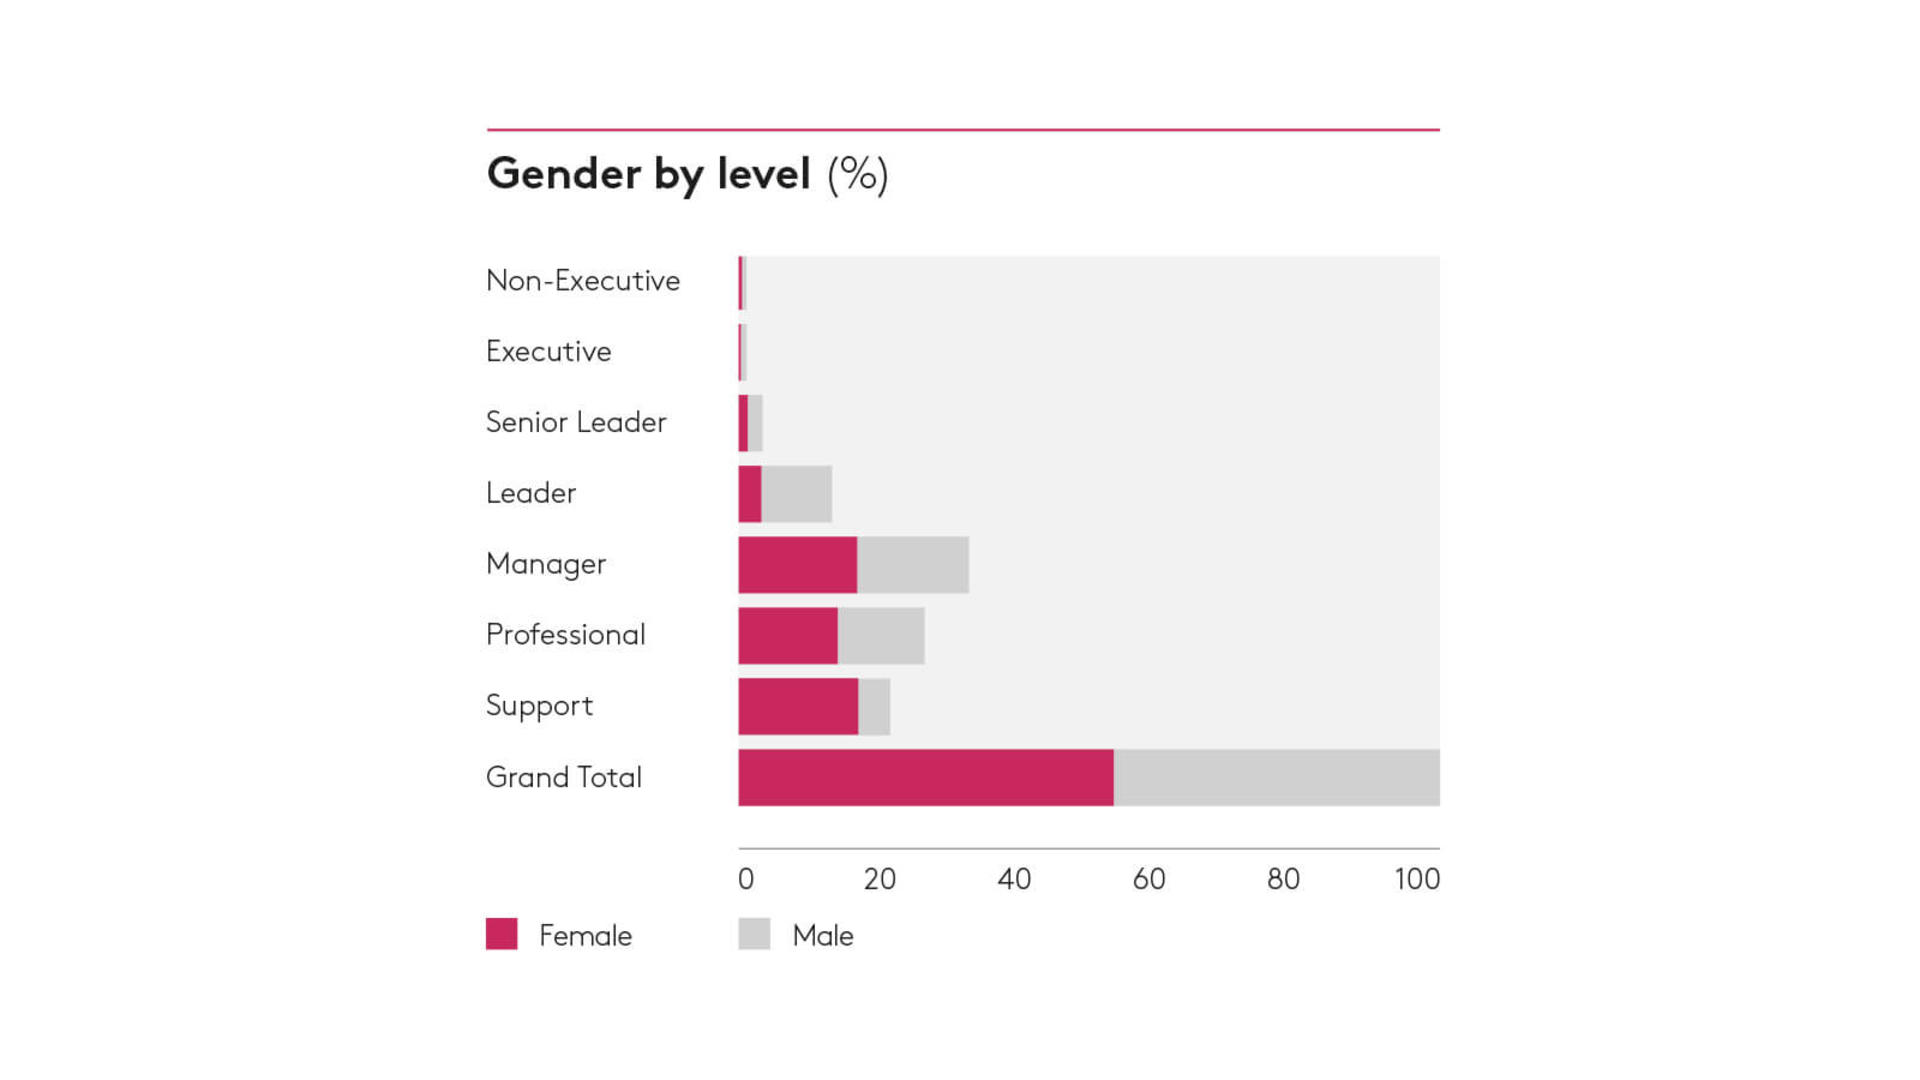 Gender by level 2018